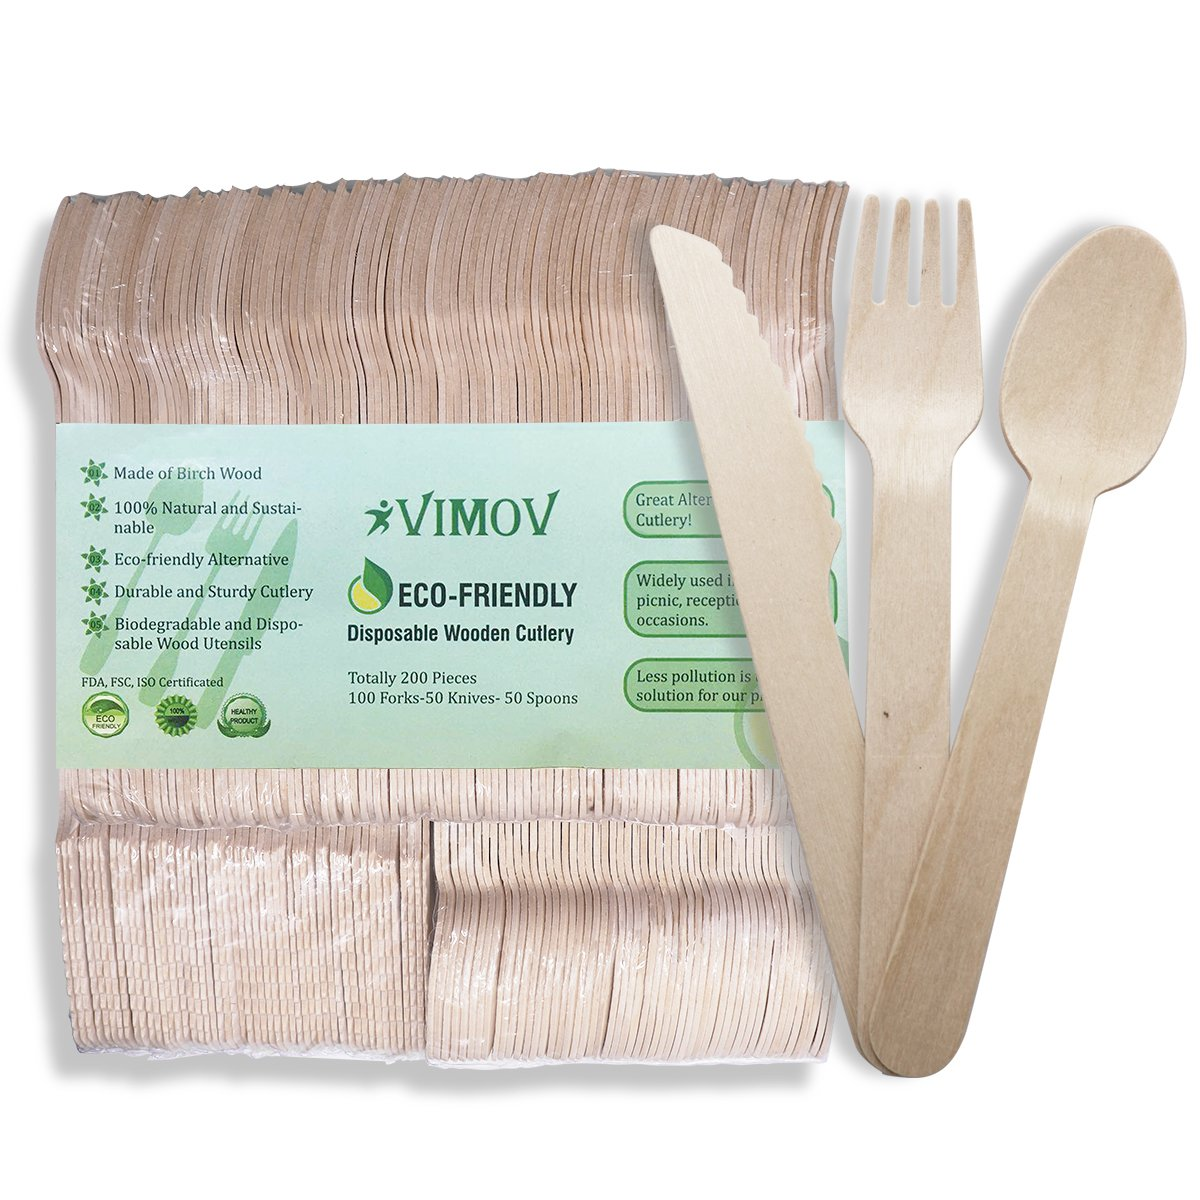 Disposable Wooden Cutlery - Biodegradable Compostable Wooden Utensils for Party, Wedding, Picnics, BBQ, Family Events (100 Forks, 50 Knives, 50 Spoons) VIMOV